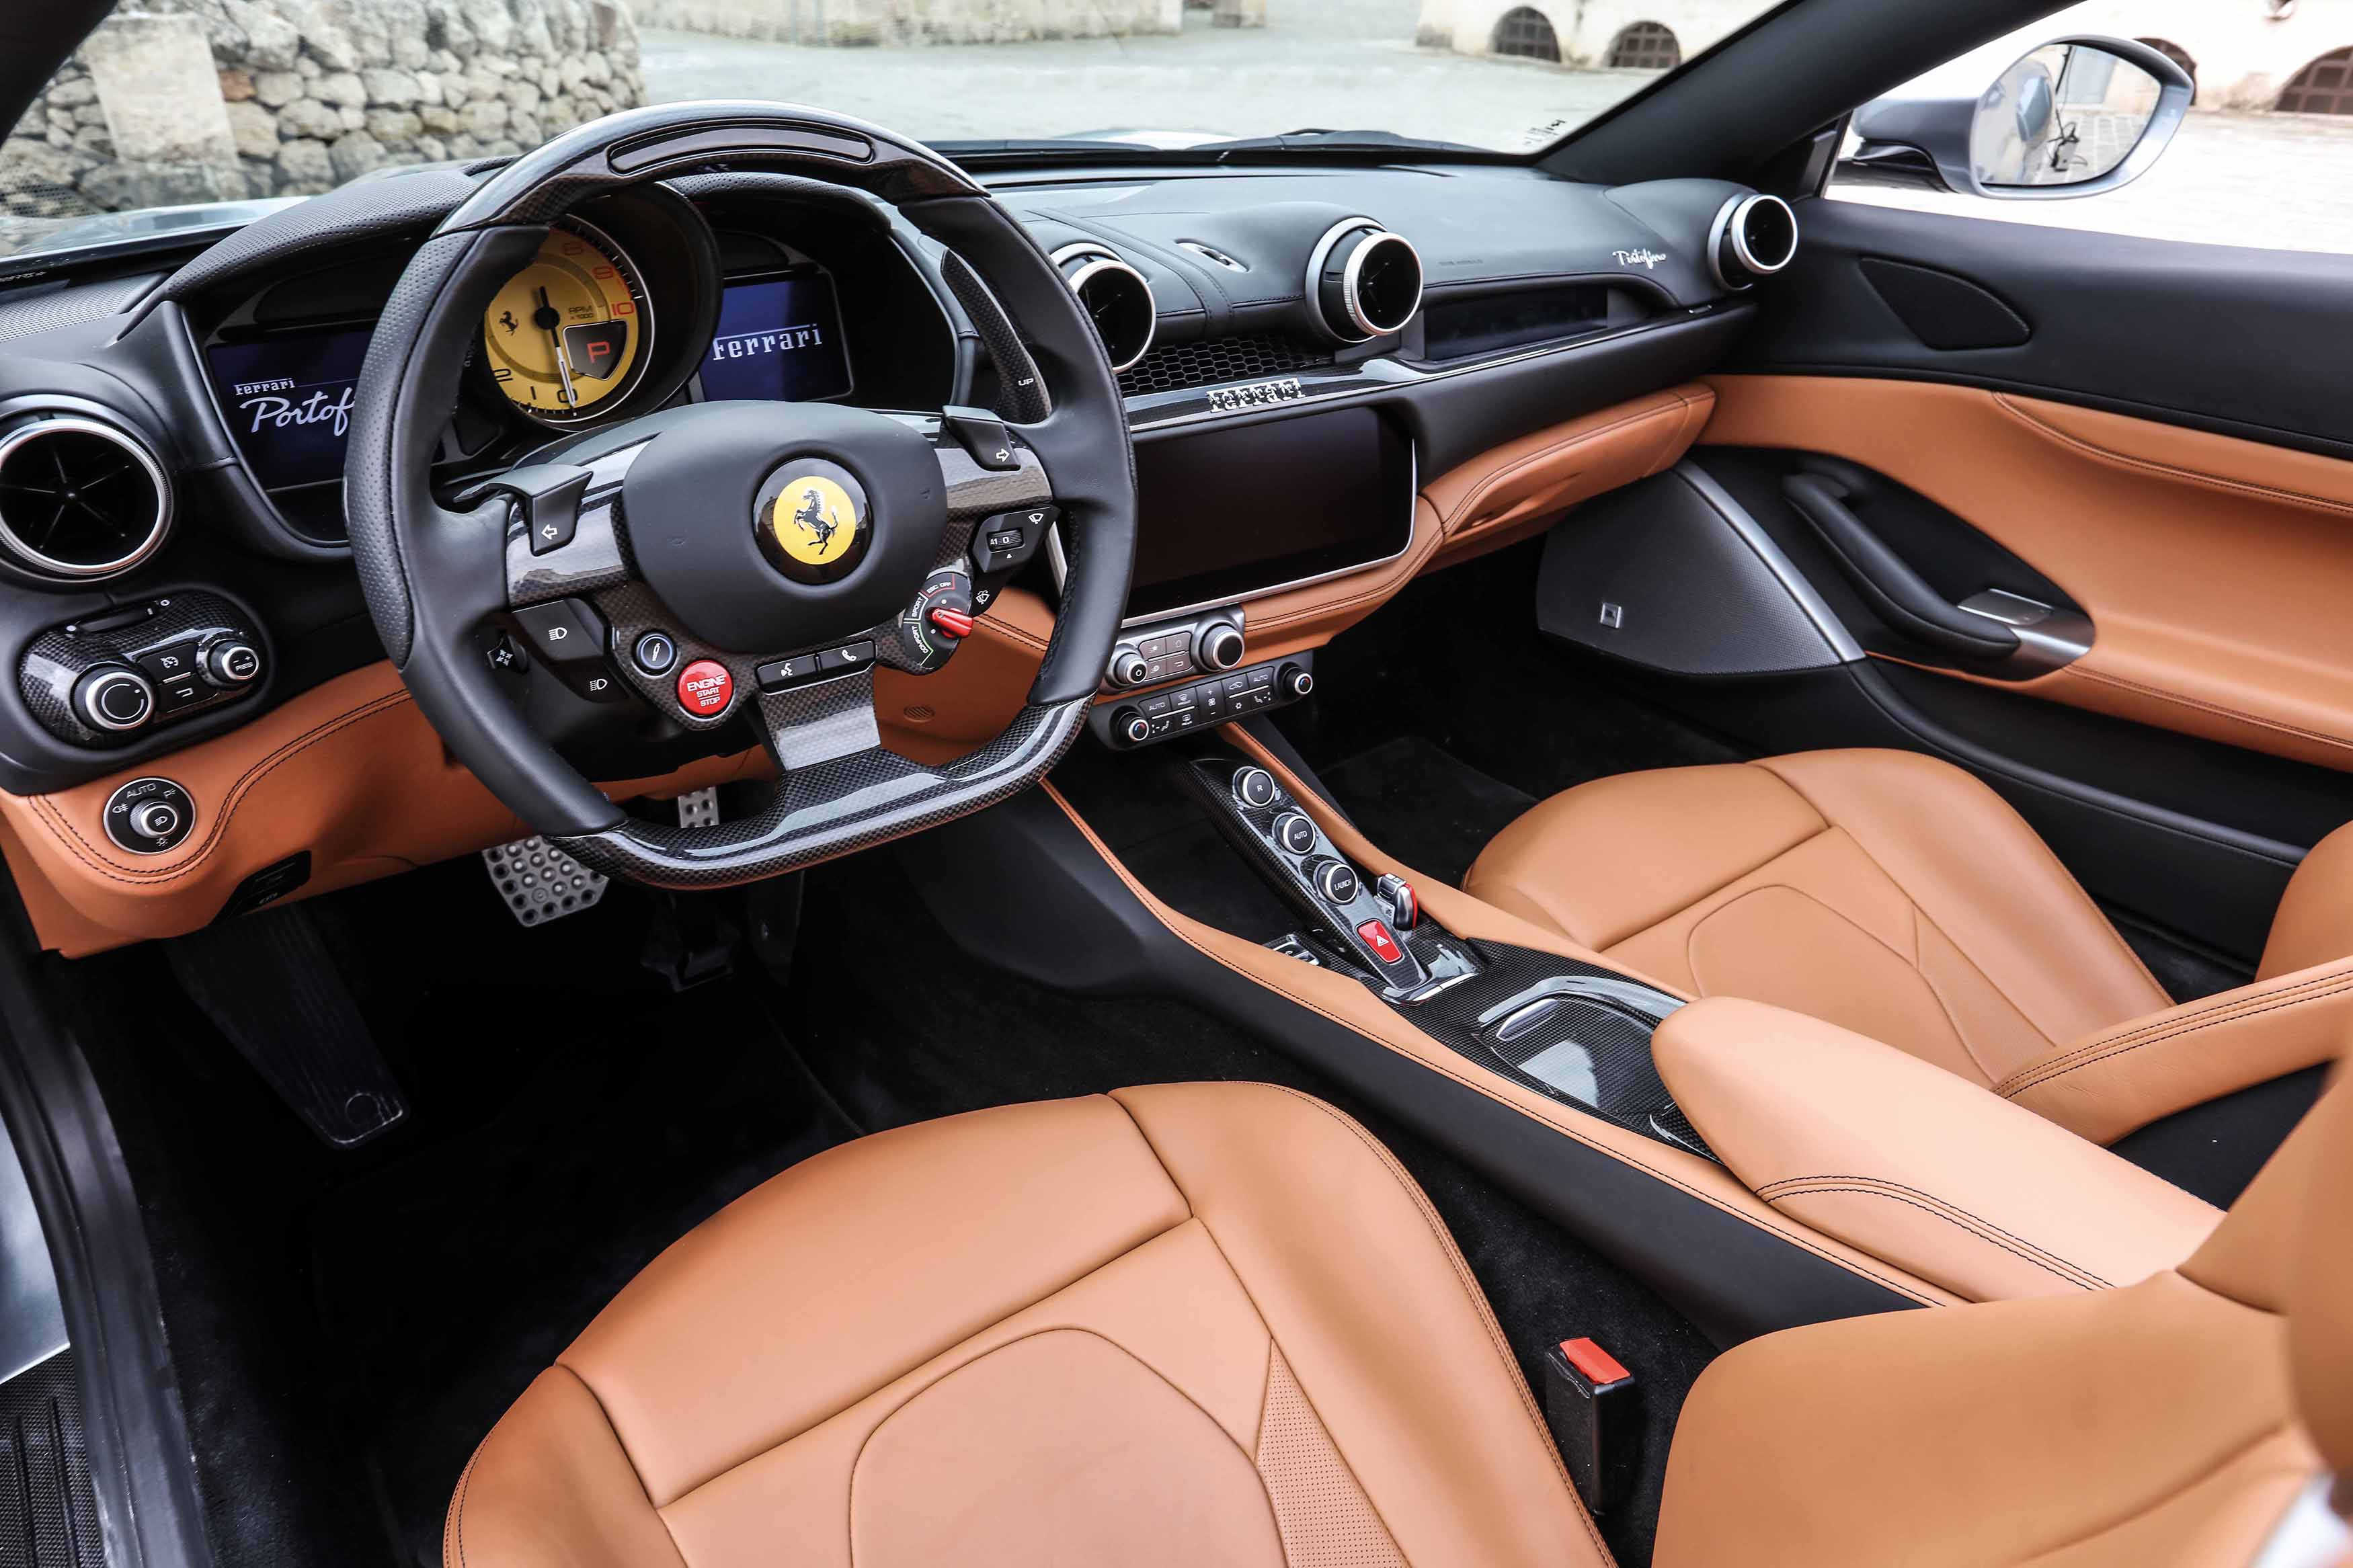 The Portofino's interior and engine takes notes from the more expensive Ferrari GTC4Lusso T and is carefully adapted for use in the entry-level Ferrari